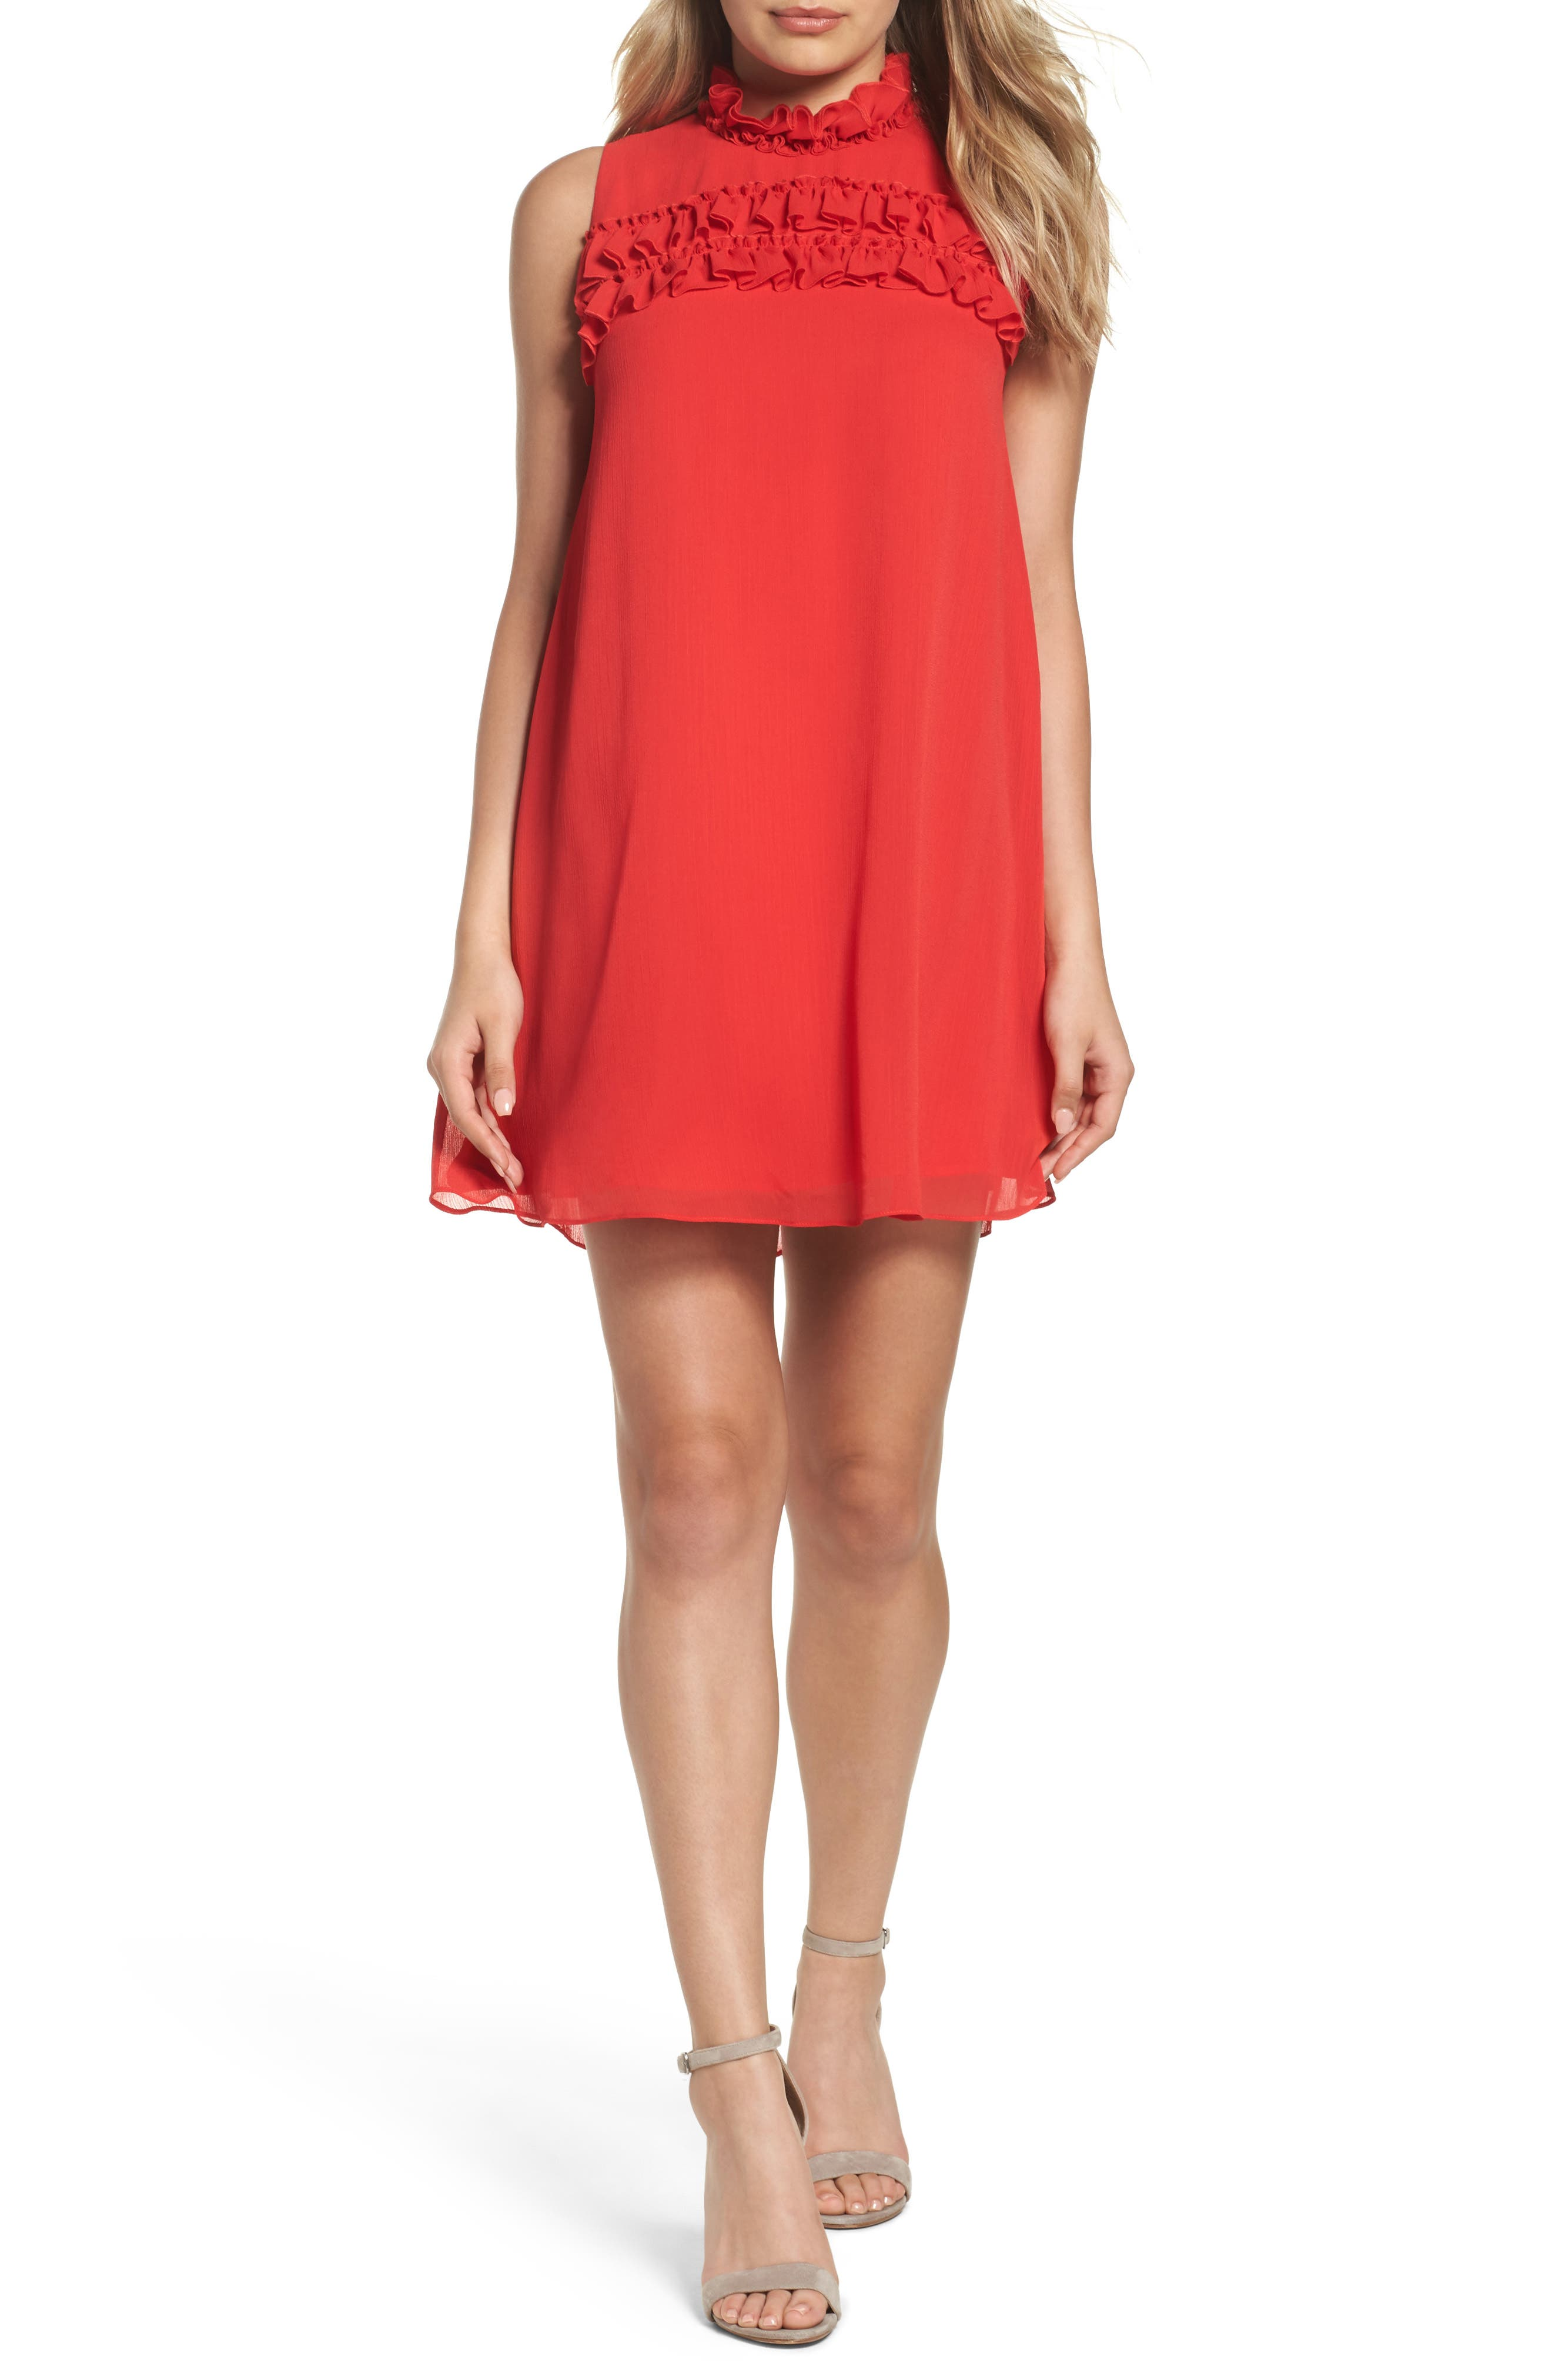 Hanson Trapeze Dress,                             Main thumbnail 1, color,                             638